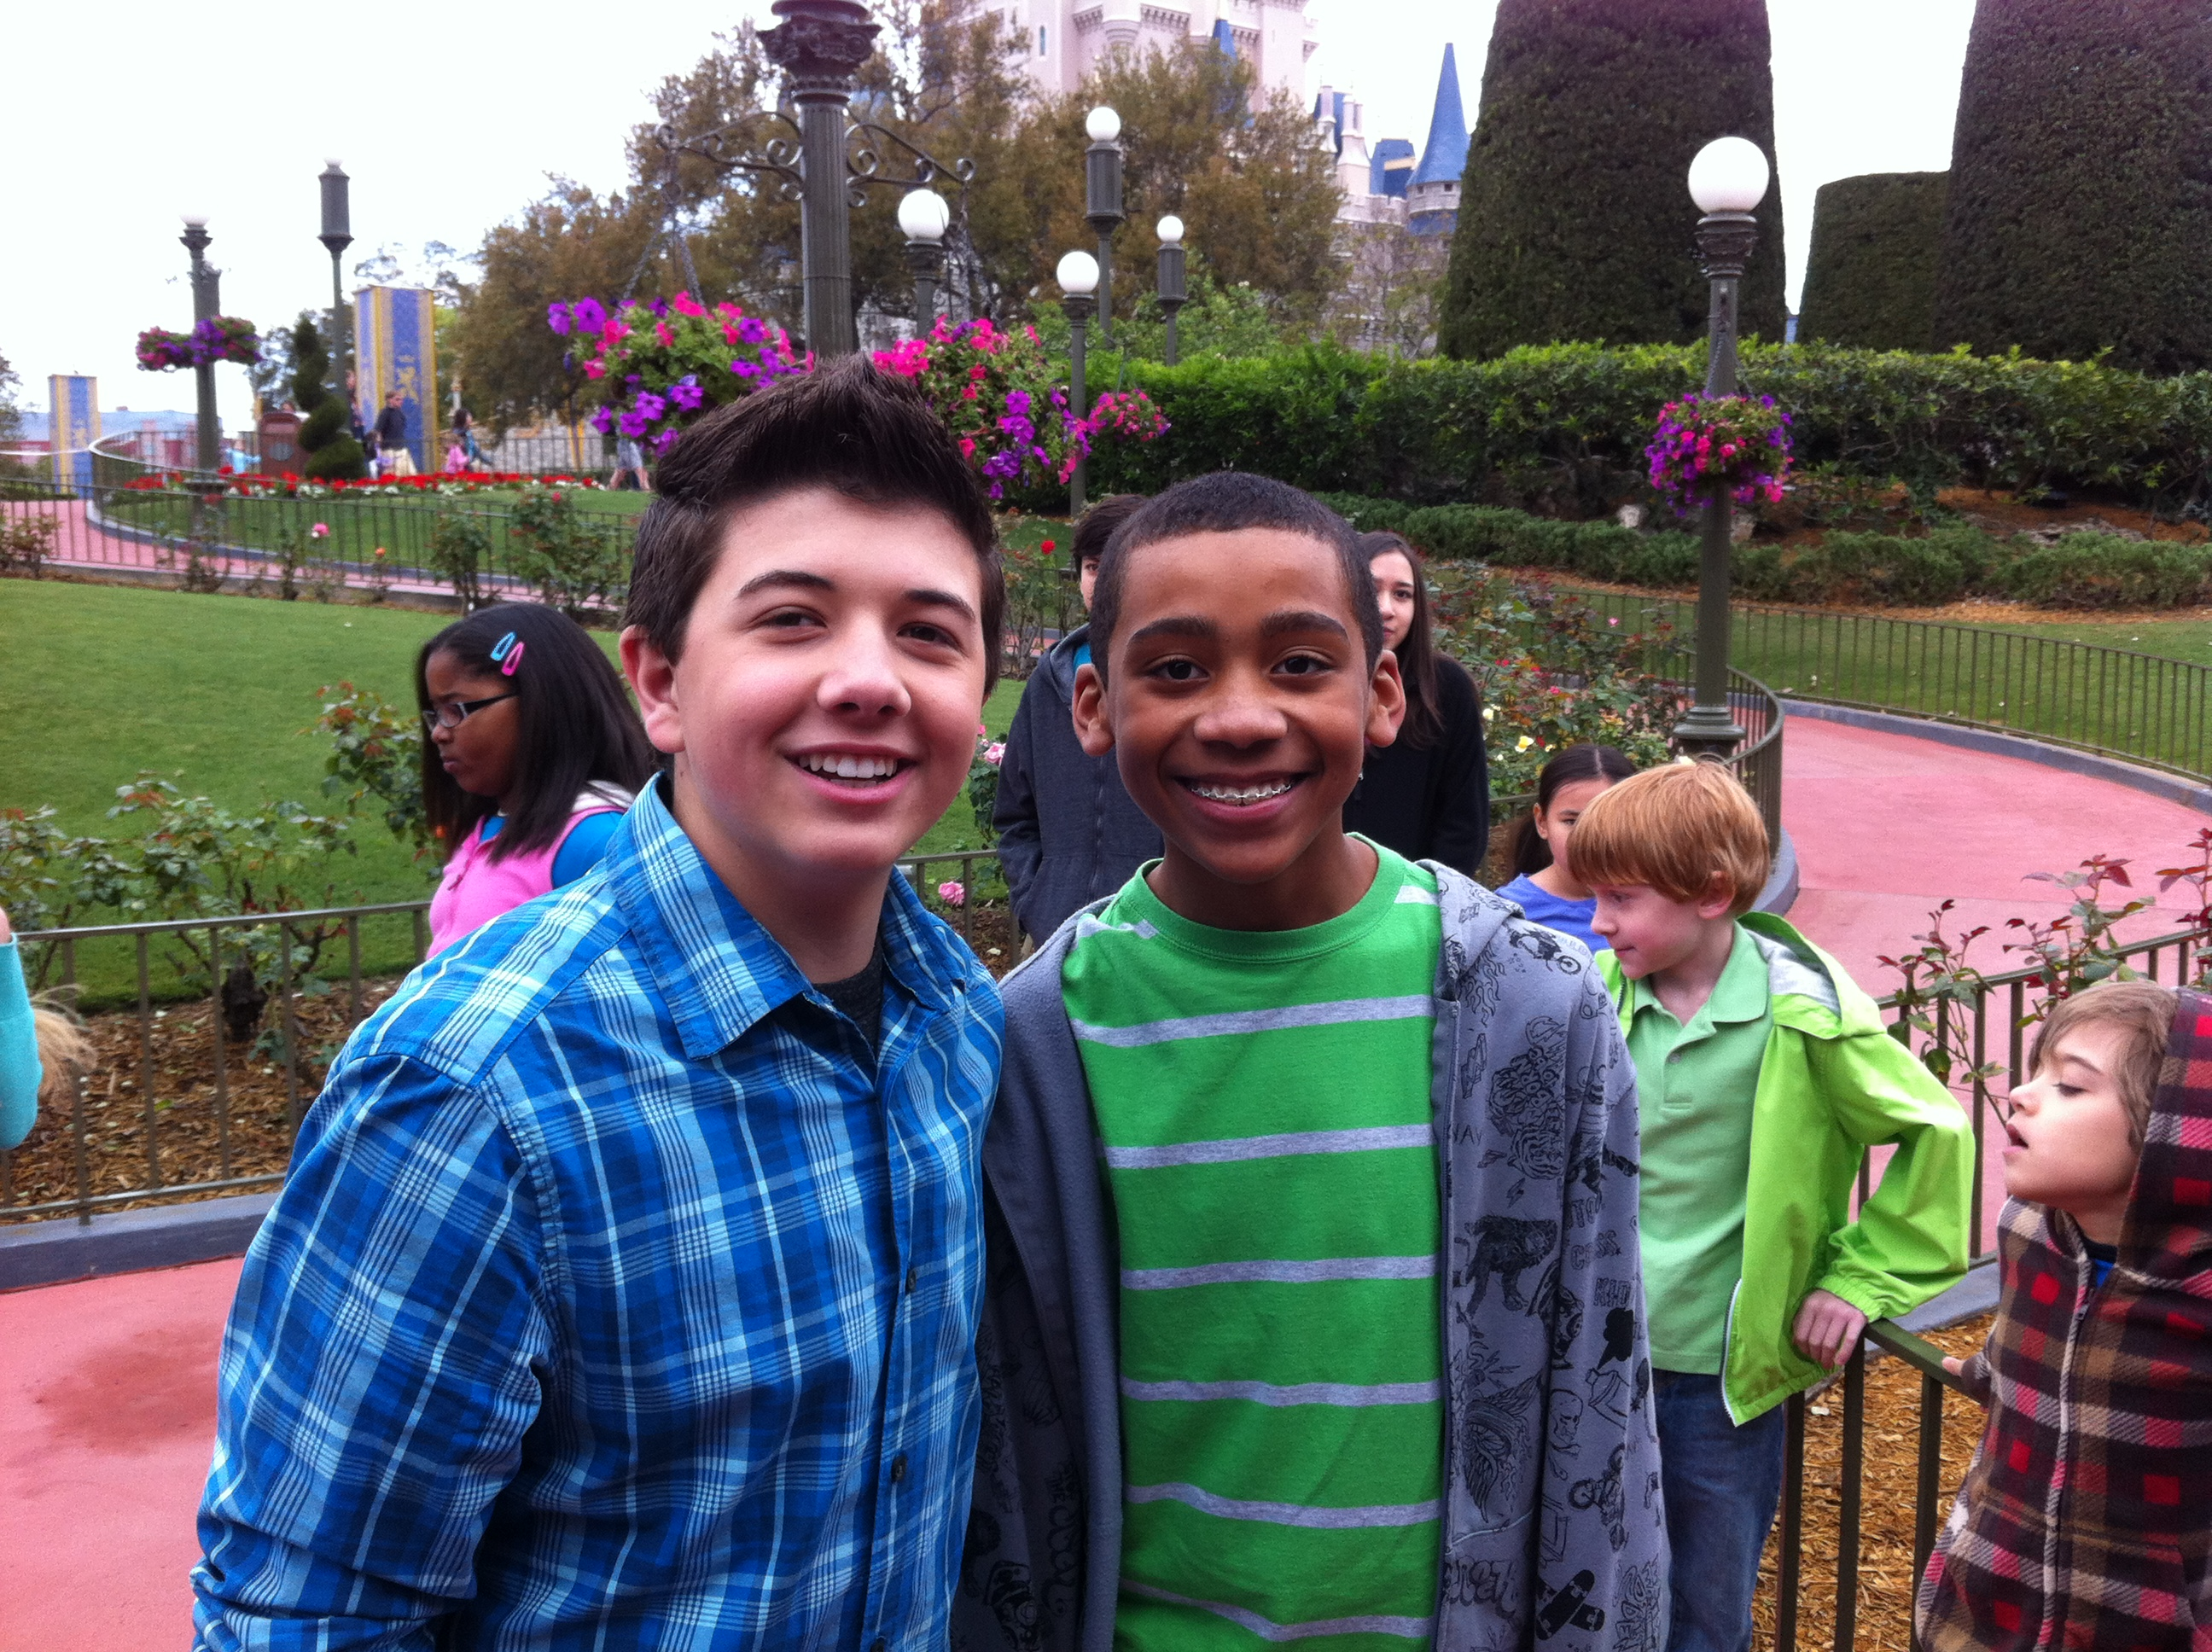 Bradley Steven Perry hanging out with Friend